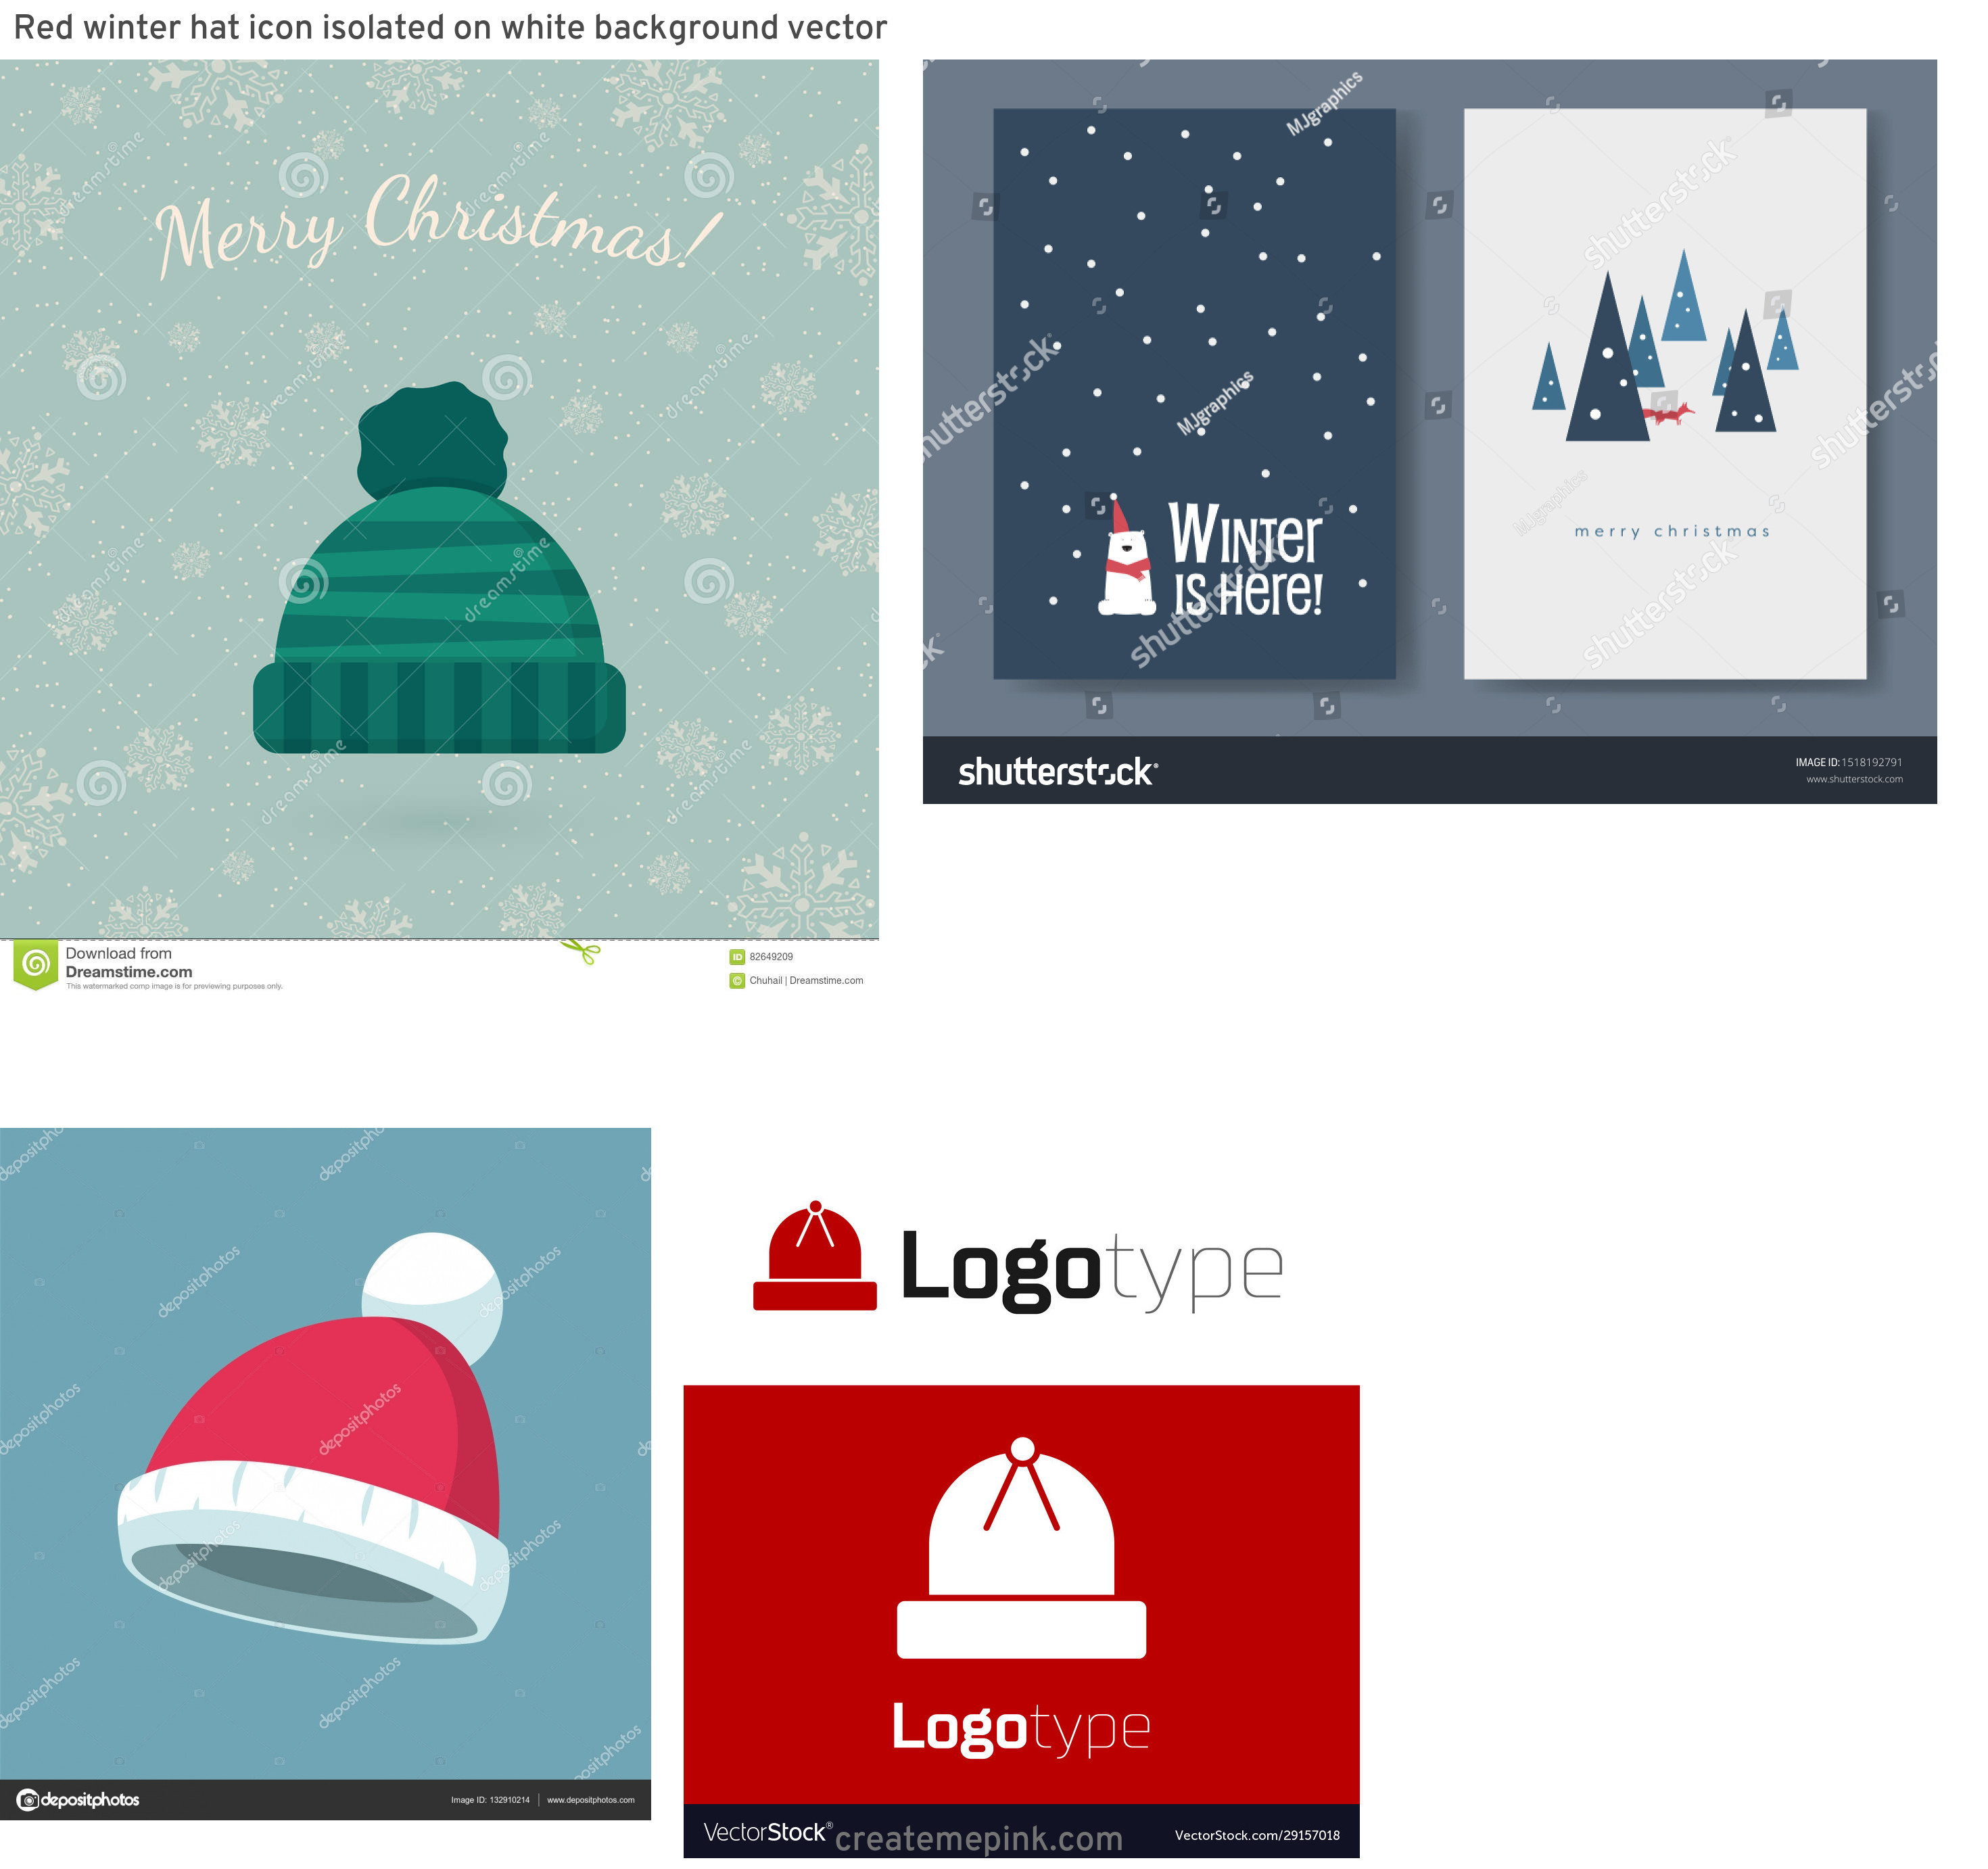 Winter Hat Vectors Templates: Red Winter Hat Icon Isolated On White Background Vector